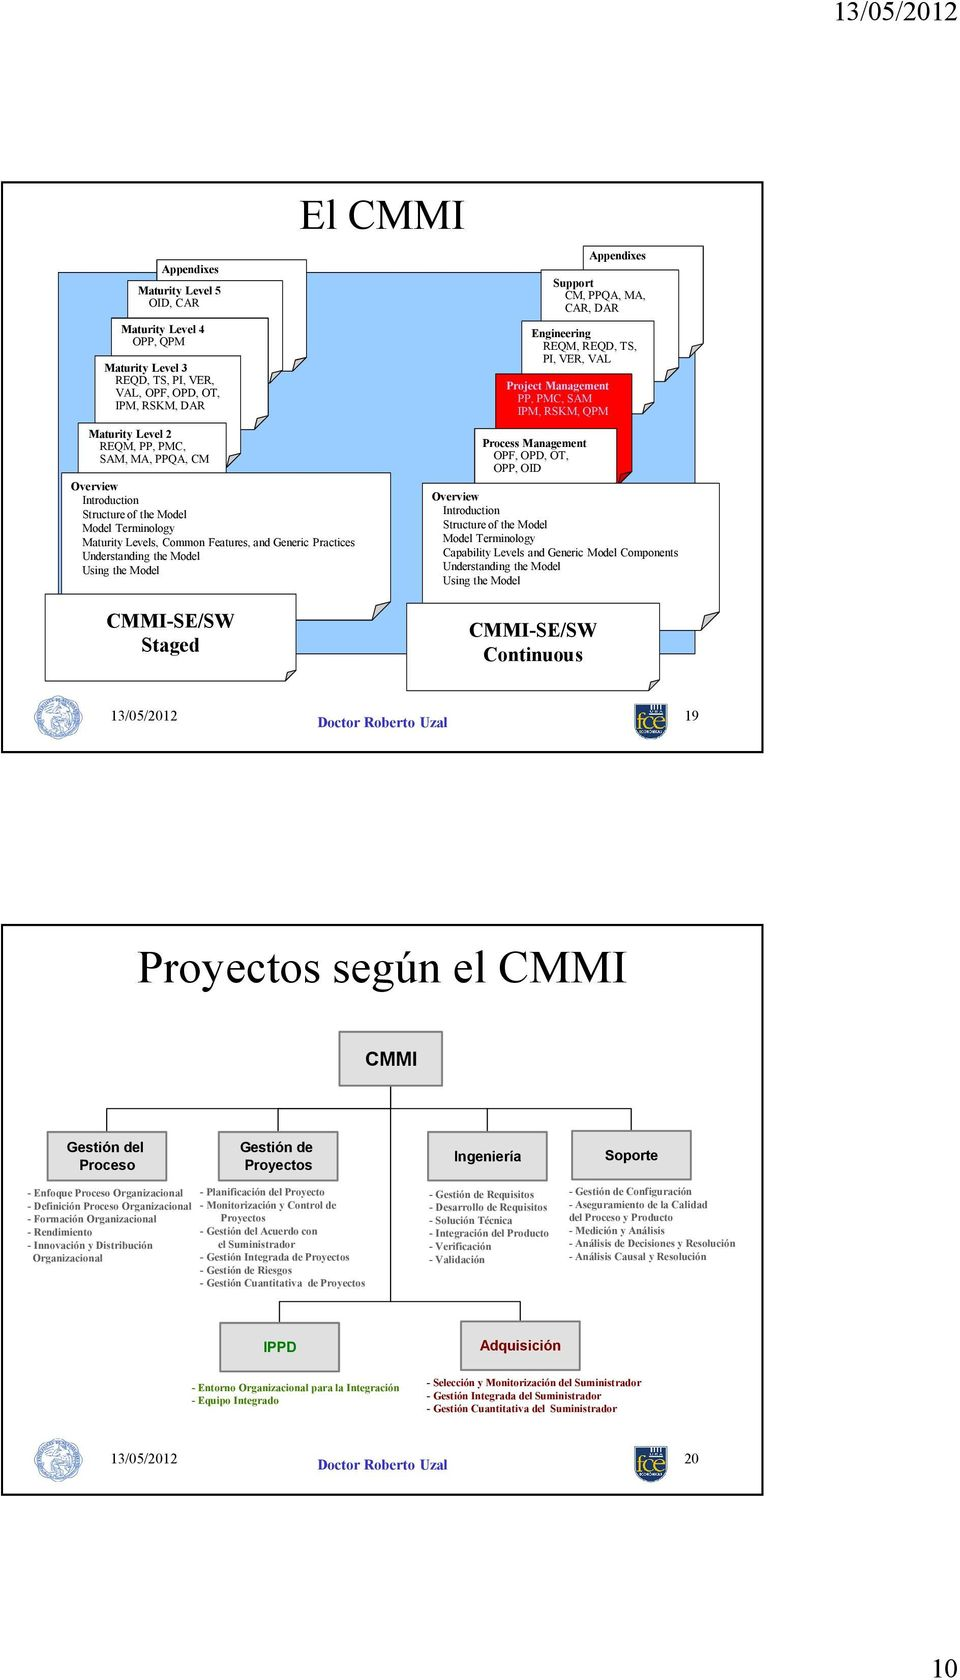 Project Management PP, PMC, SAM IPM, RSKM, QPM Process Management OPF, OPD, OT, OPP, OID Appendixes Support CM, PPQA, MA, CAR, DAR Overview Introduction Process Management Structure of PAs the Model